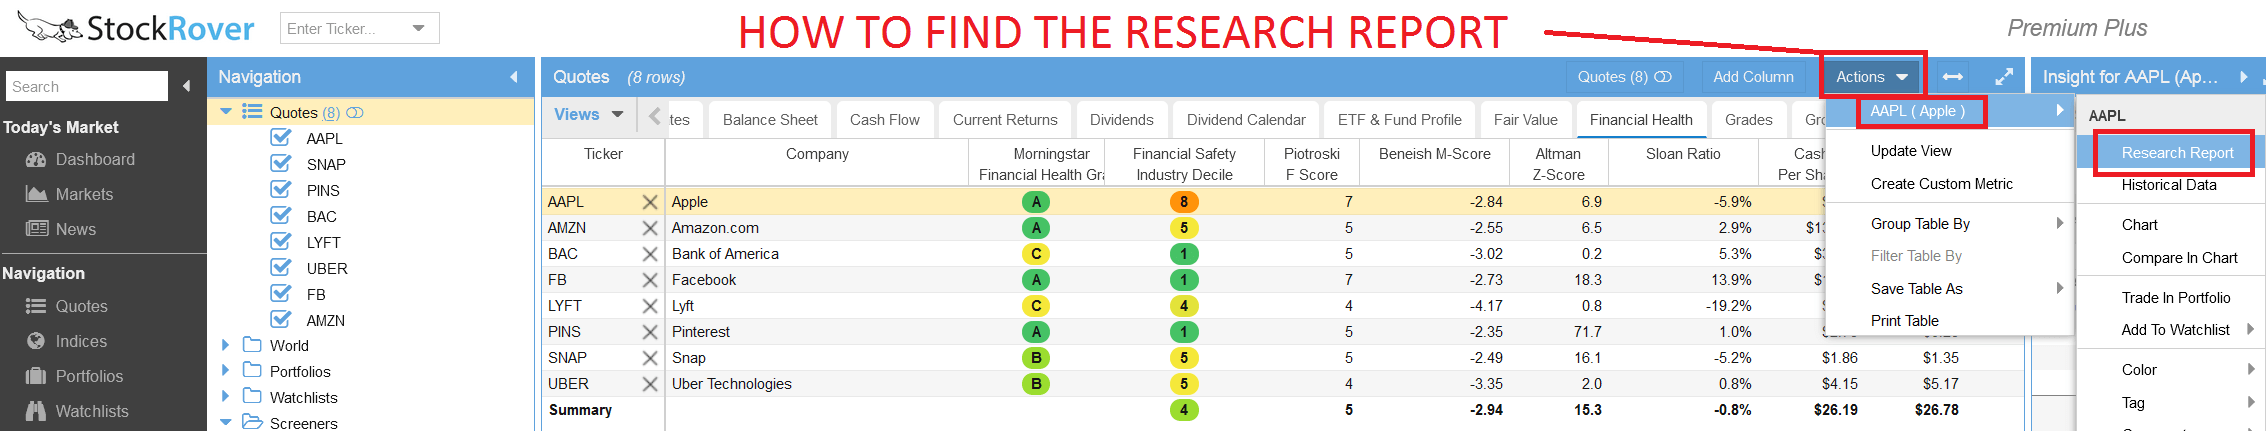 Research Report Request Review